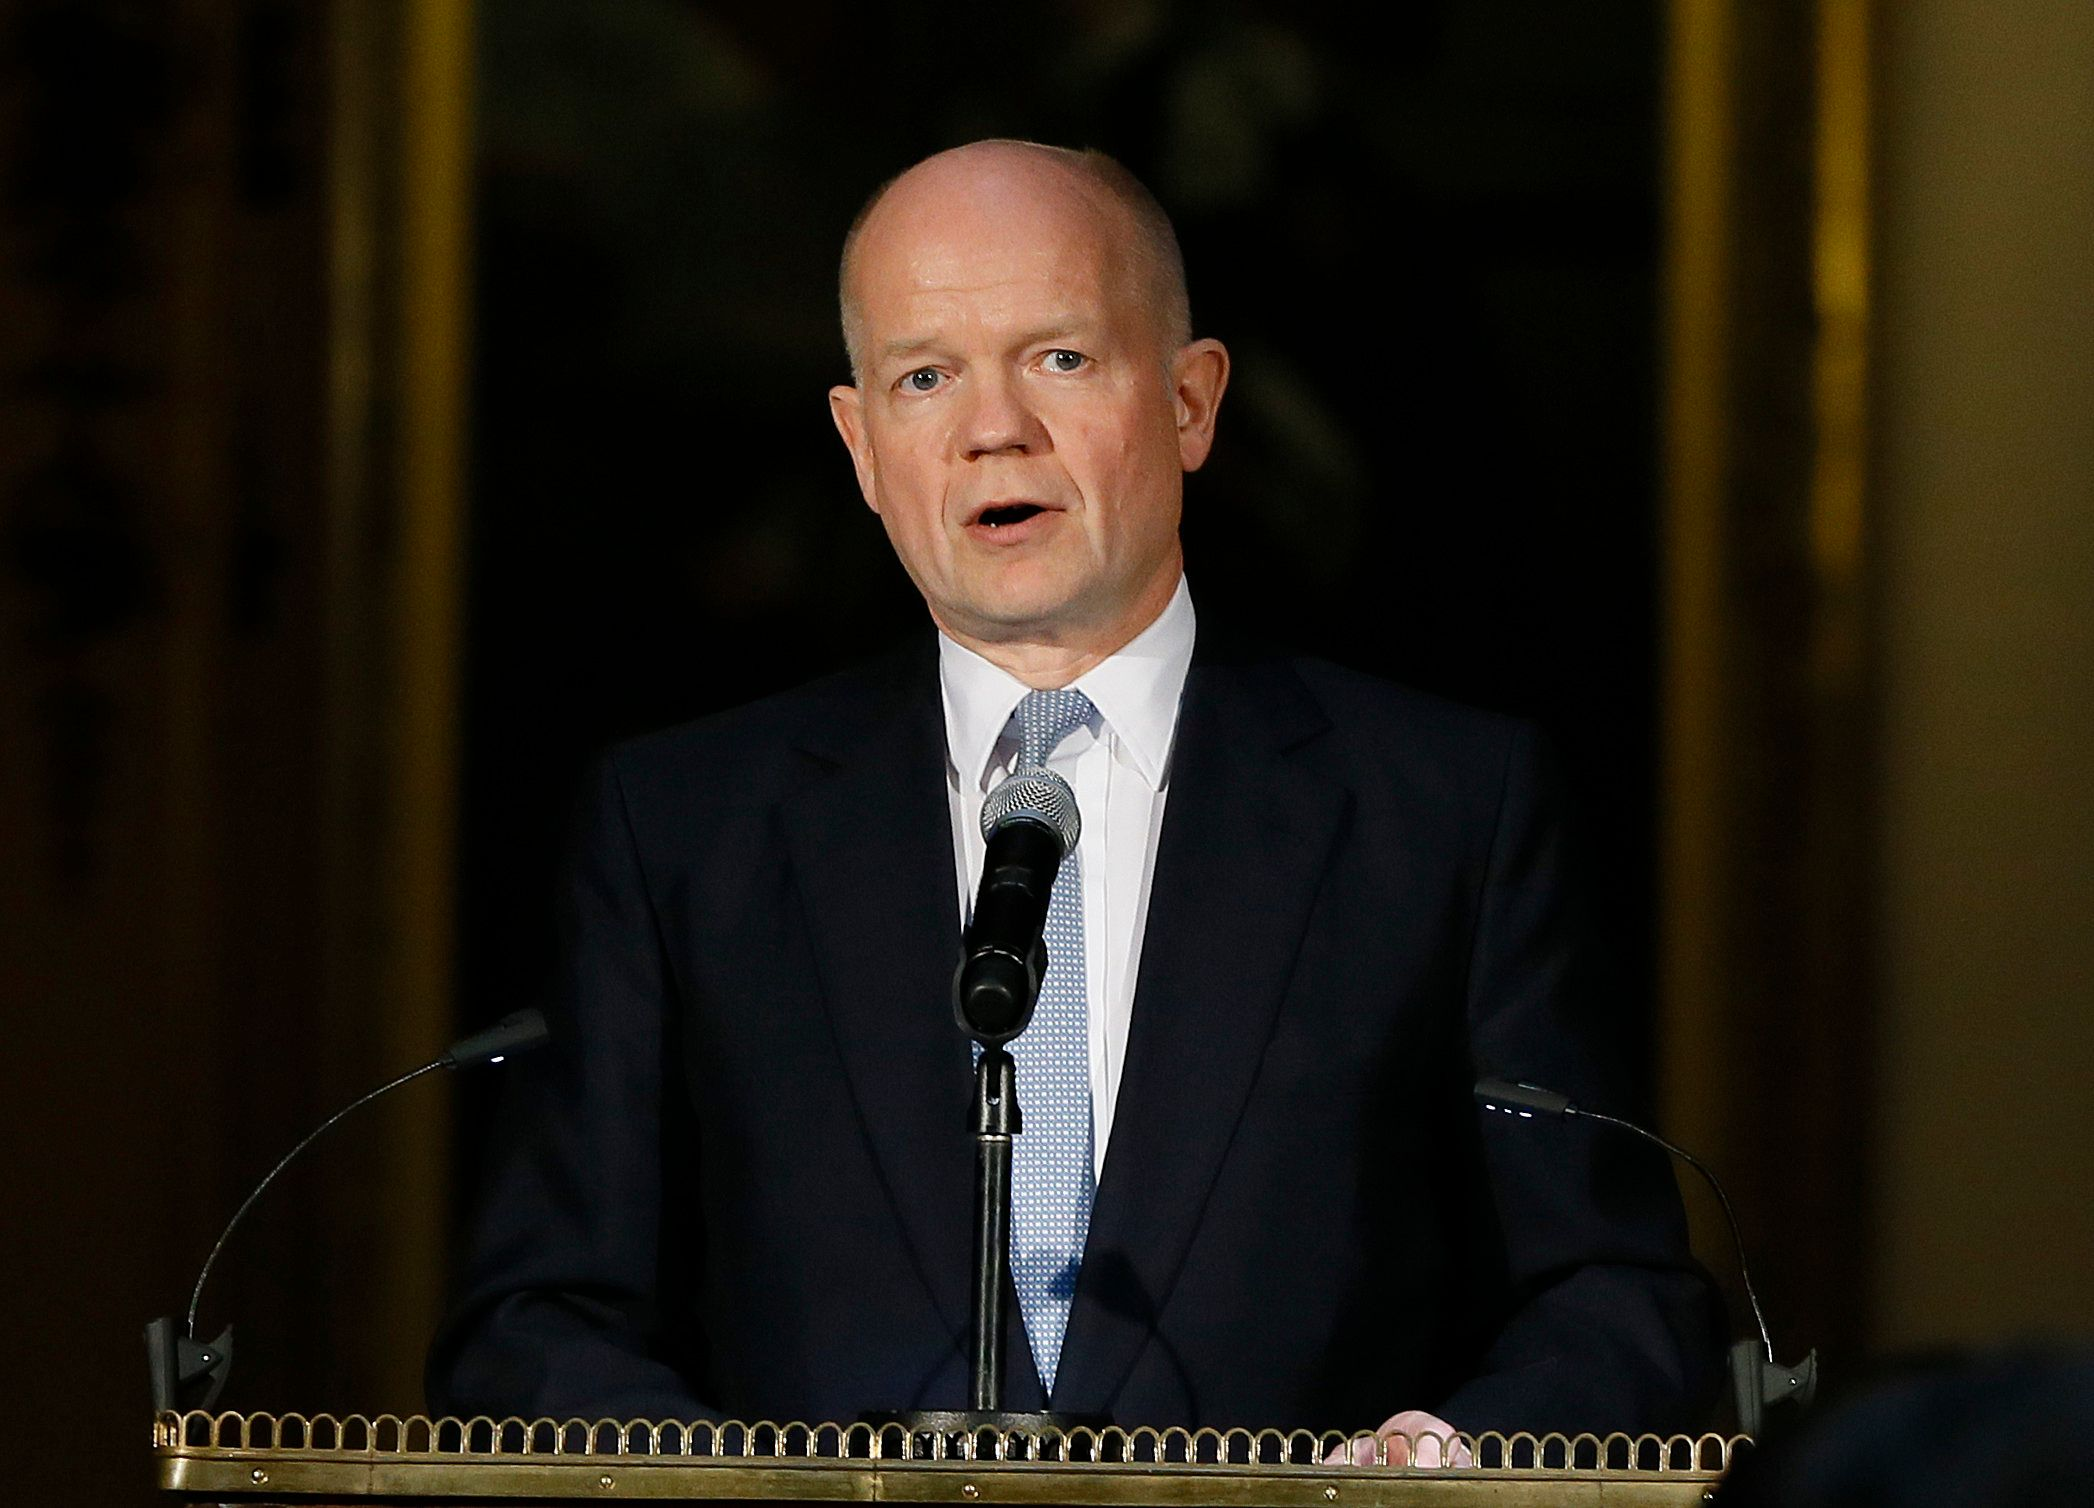 Lord Hague Calls For Cannabis To Be Legalised As War On Drugs Has Been 'Irreversibly